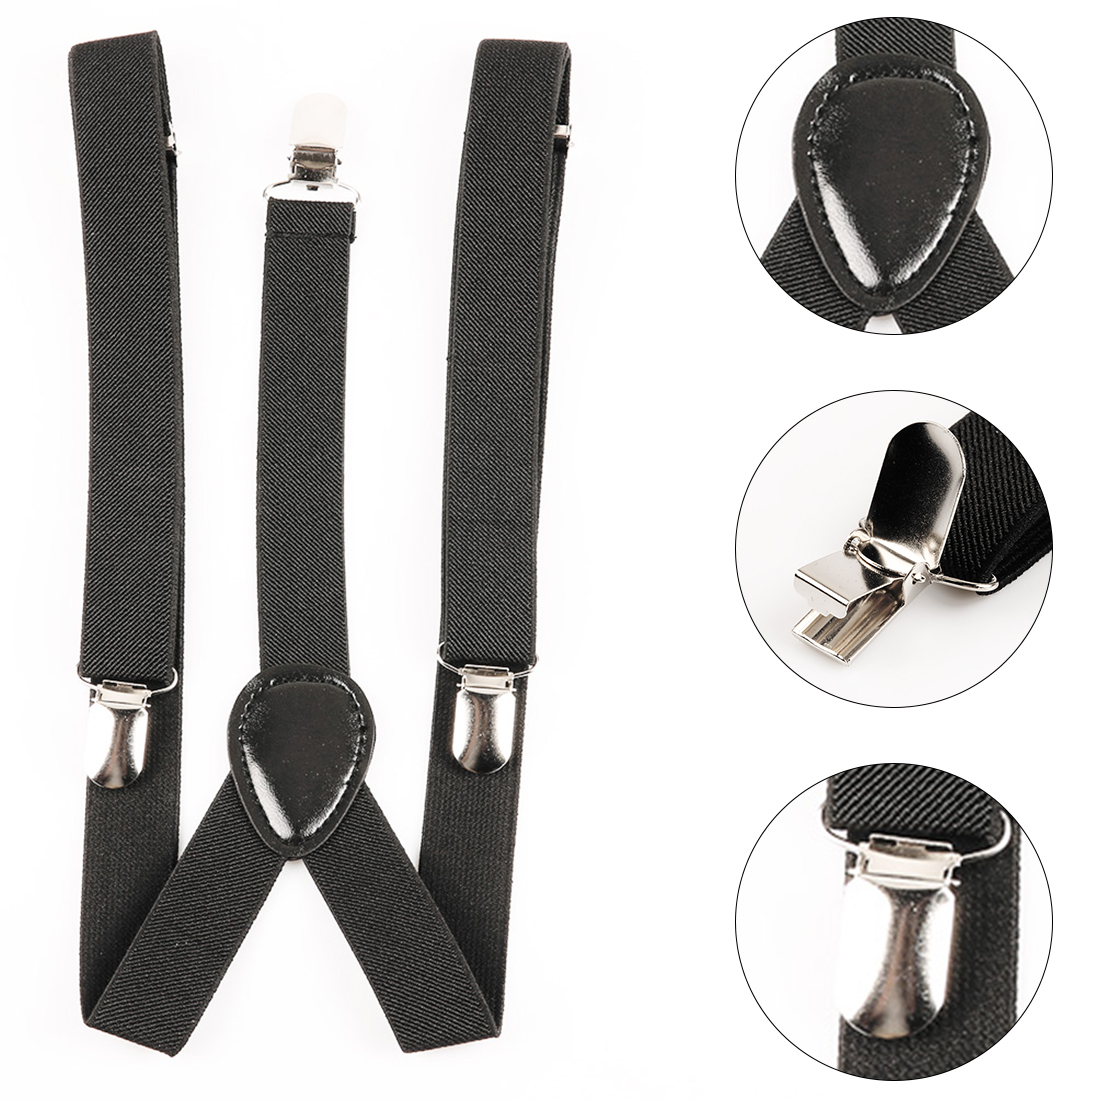 High Quality Farbic Black Mens Womens Unisex Clip-on Suspenders Elastic Y-Shape Adjustable Braces Solids 25*100cm Colorful